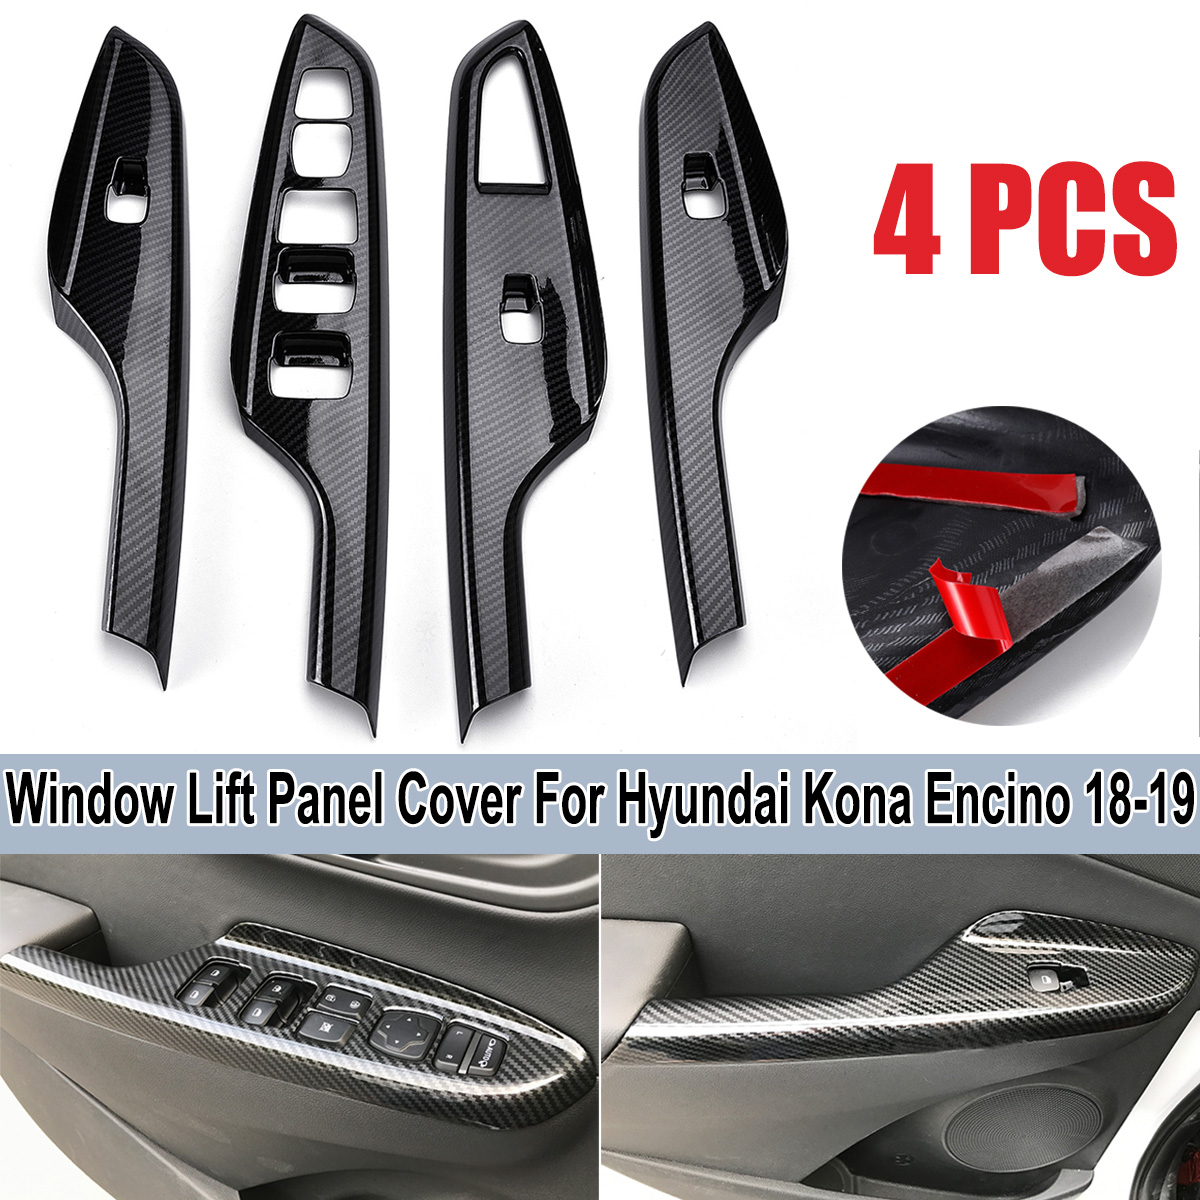 For Hyundai Kona Kauai Encino 2018 2019 Car Steering Wheel: ABS Carbon Fiber Color Door Window Switch Lift Panel Cover